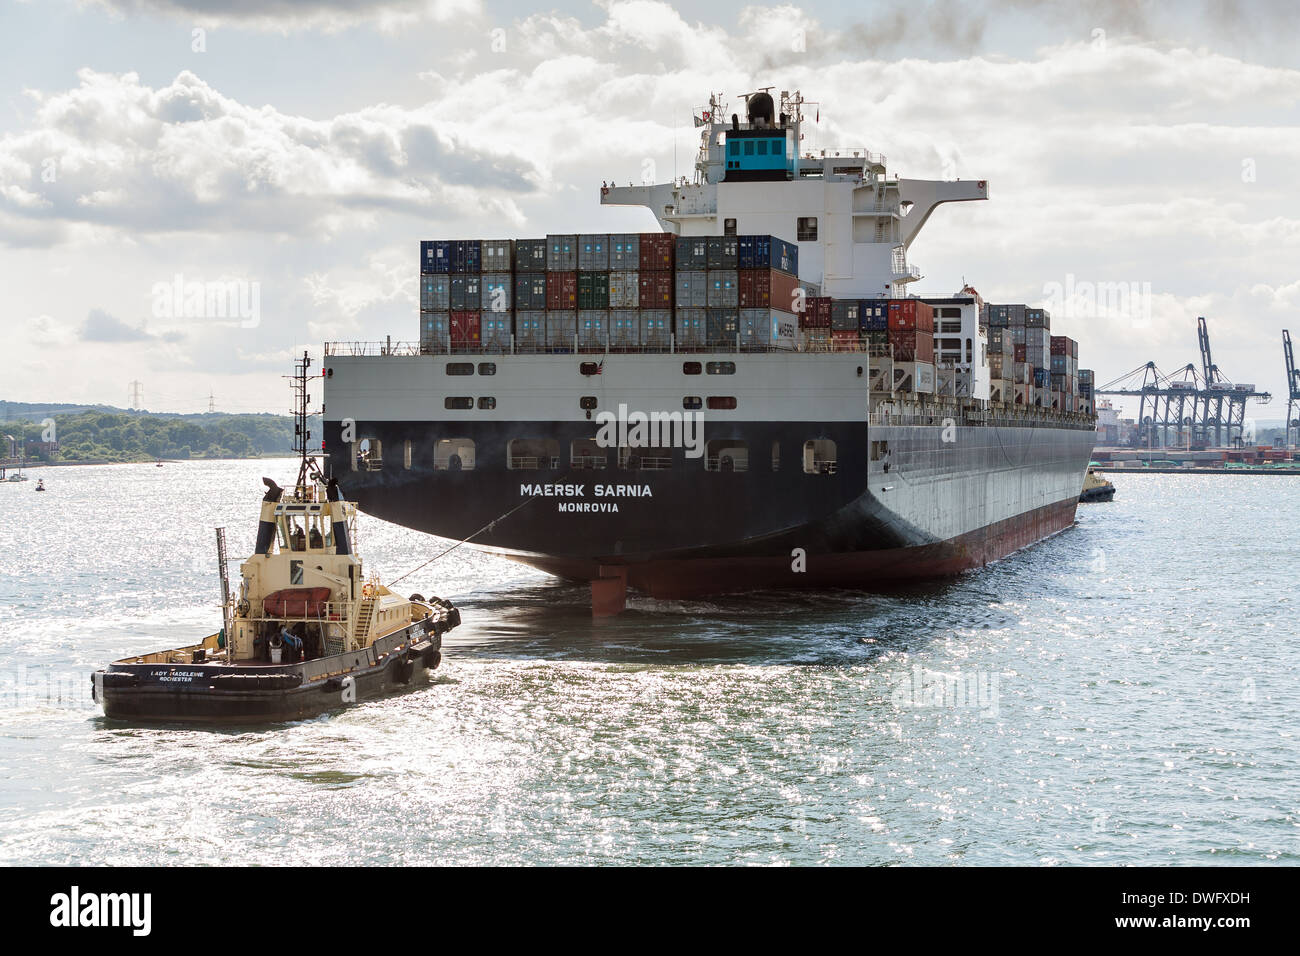 Maersk Sarnia container ship arriving at Southampton container berth. Stock Photo